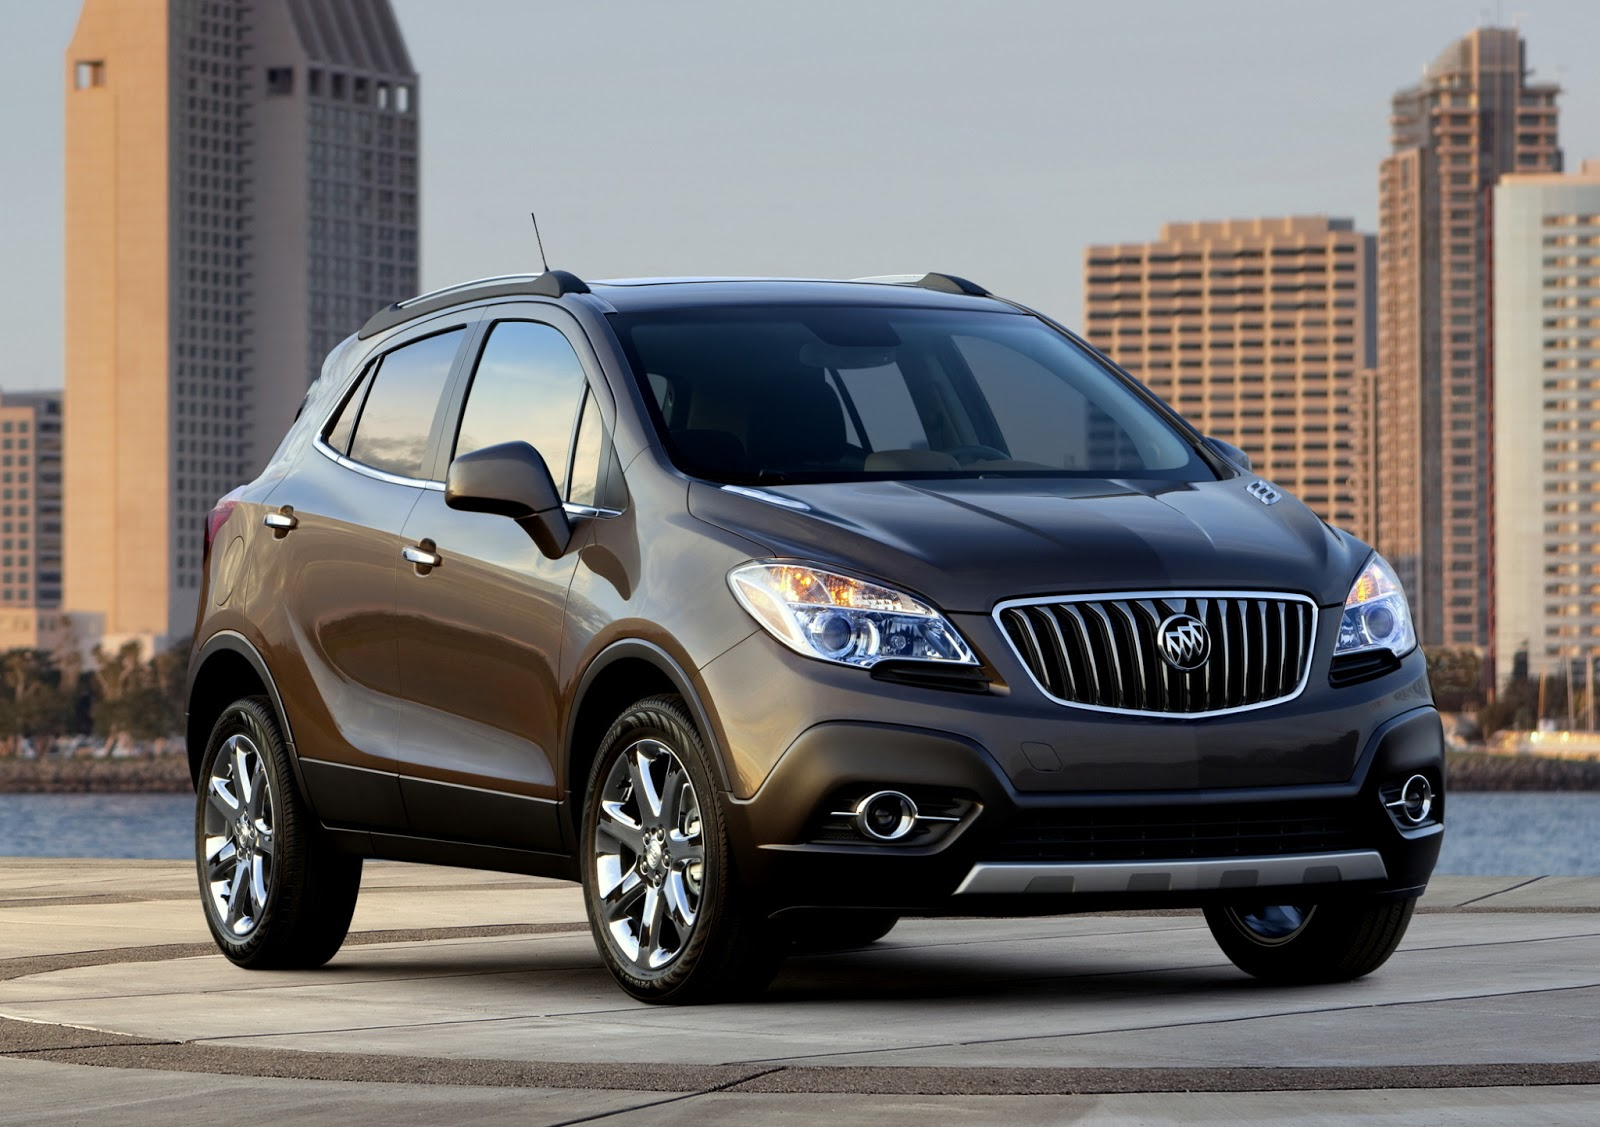 Source buick extensive press releases after the jump